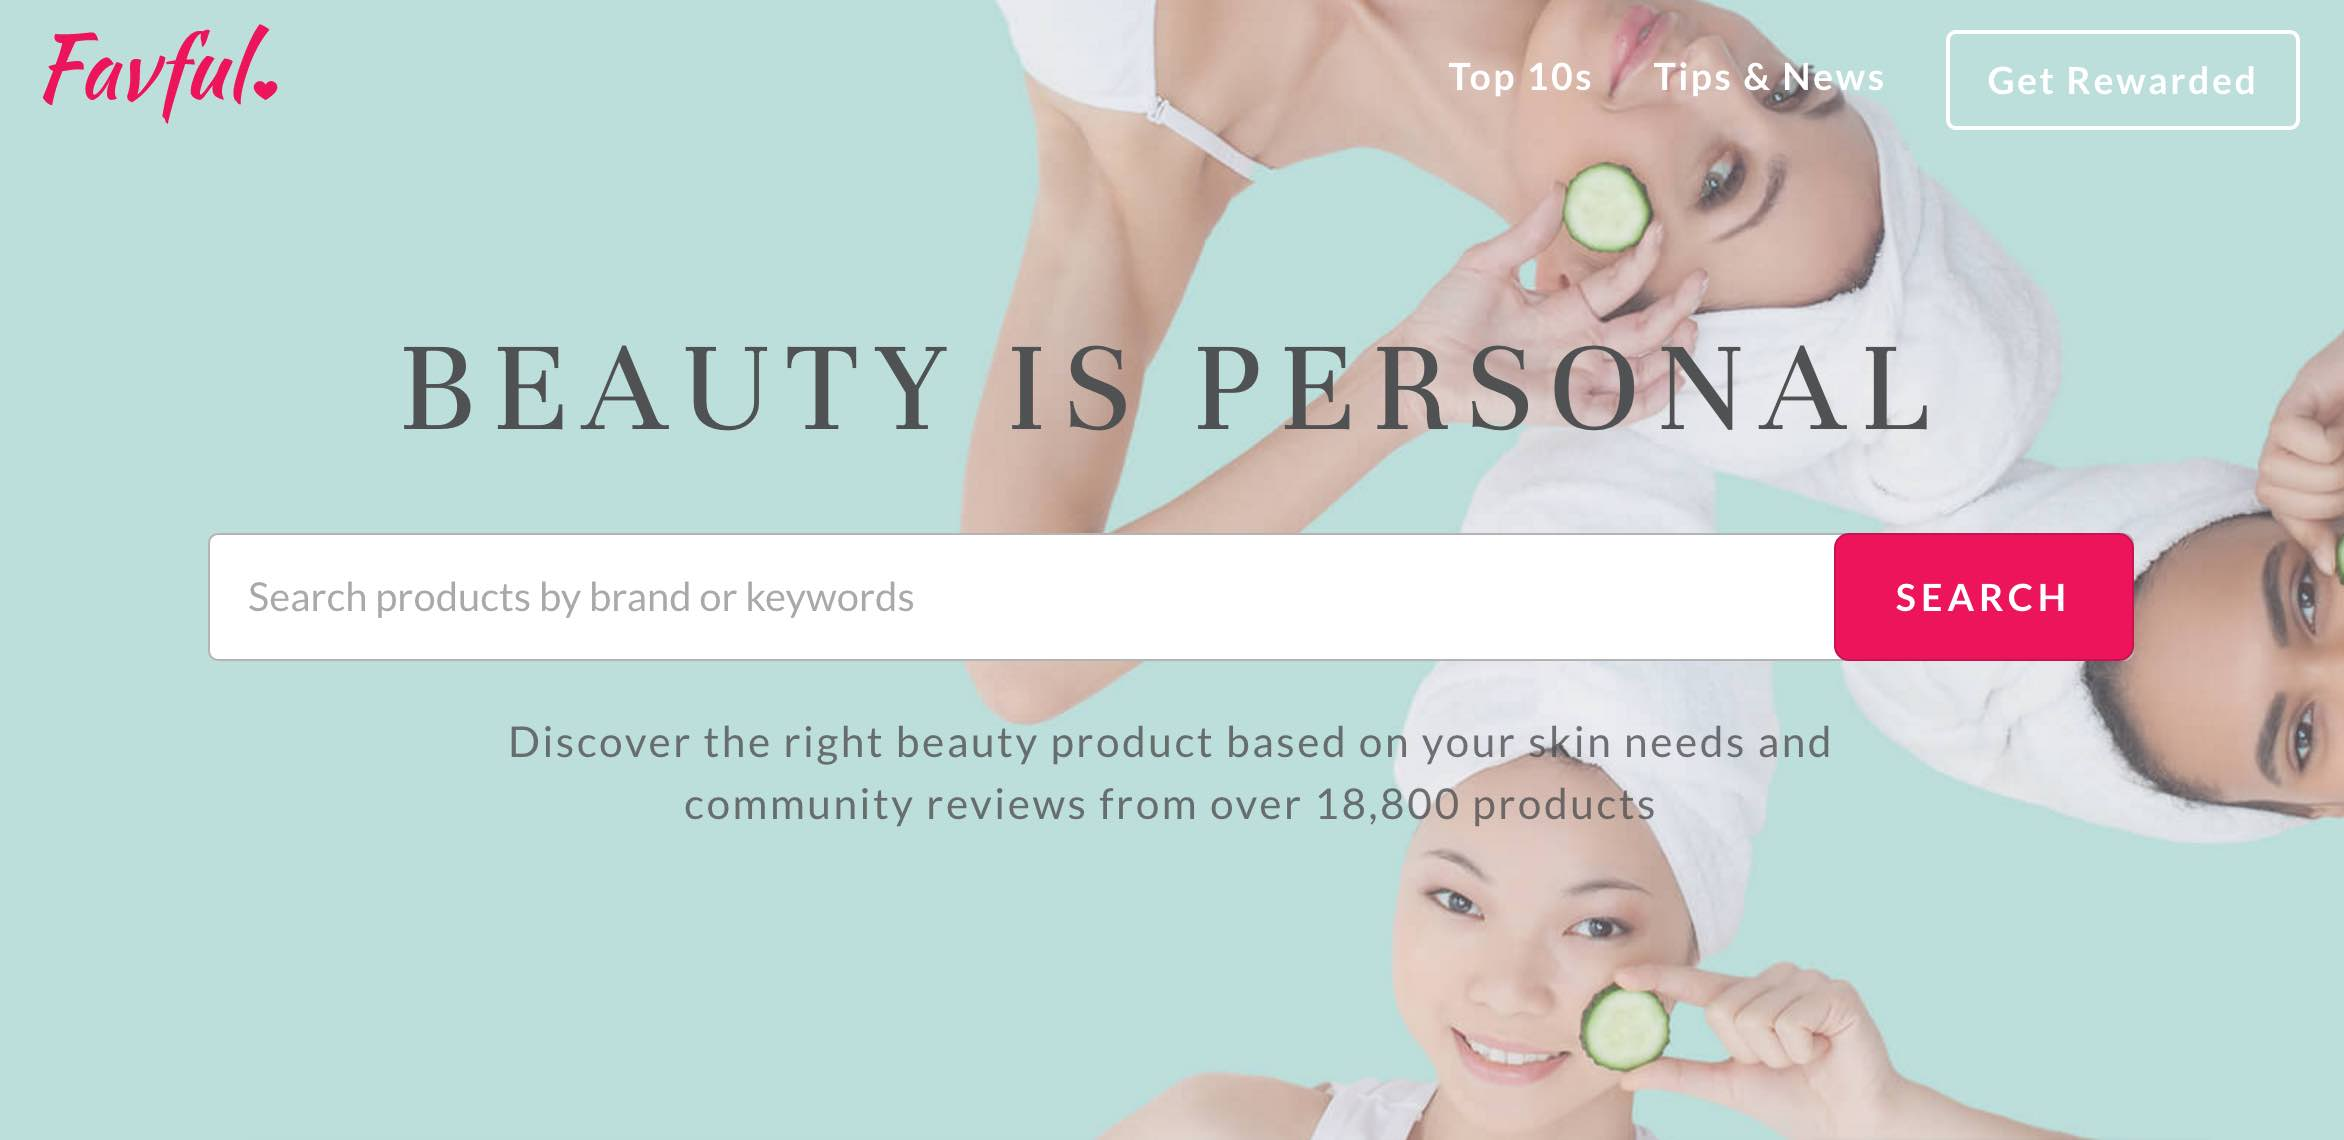 Favful Beauty Review Portal - AspirantSG